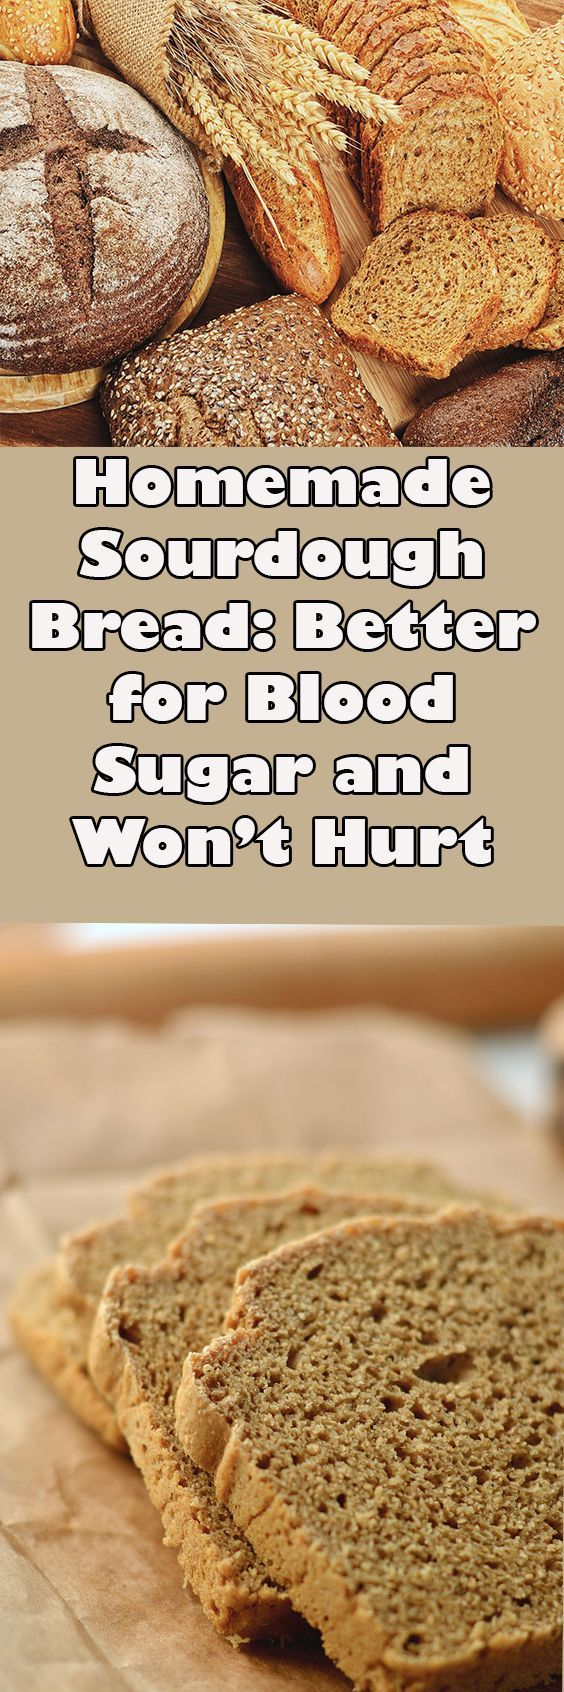 Homemade Sourdough Bread: Better for Blood Sugar and Won't Hurt Your Gut Like Gluten